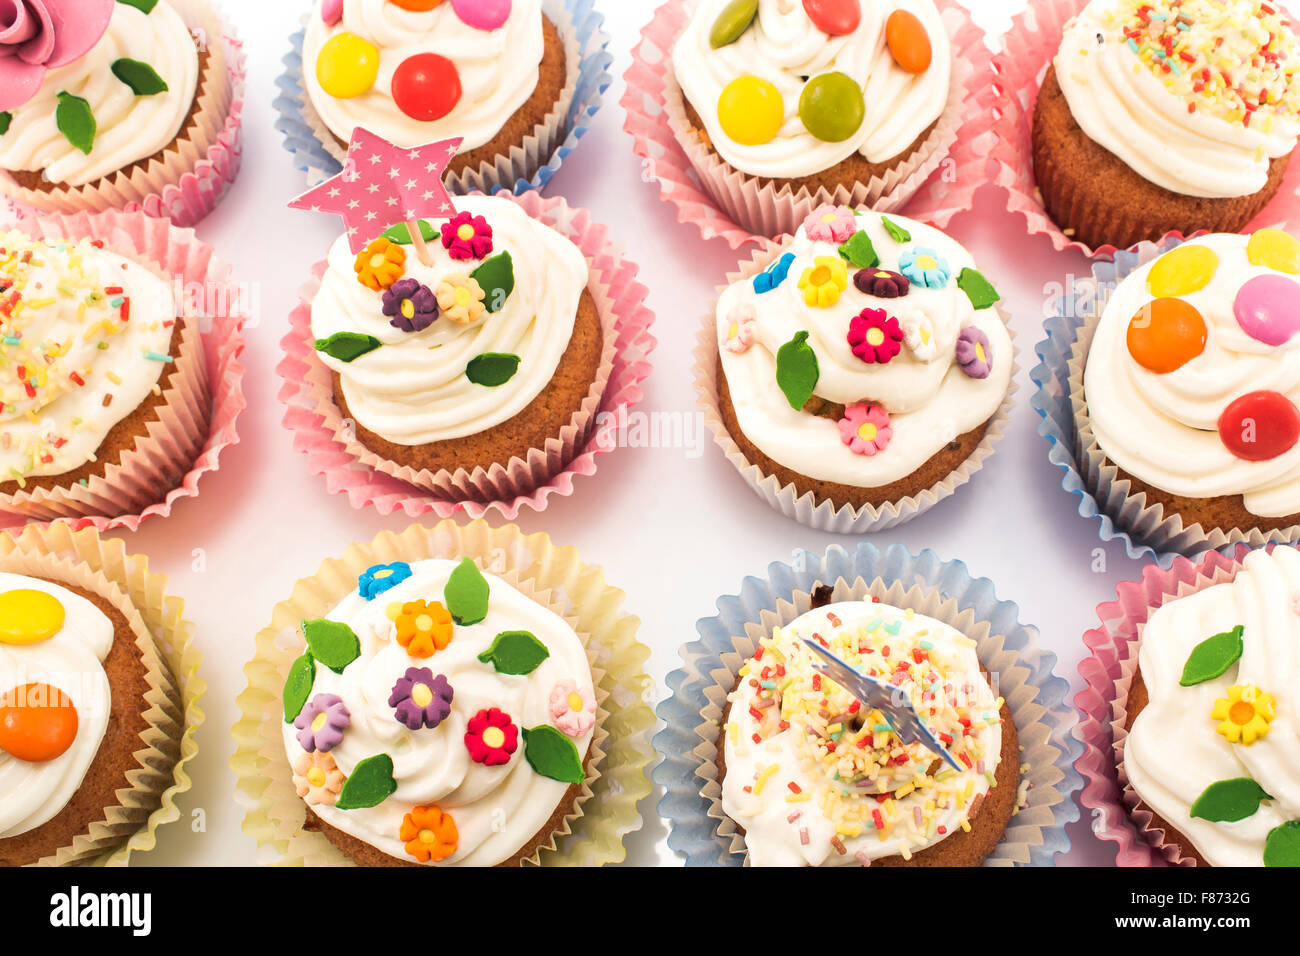 Cupcakes delicious and colorful decorated. Stock Photo